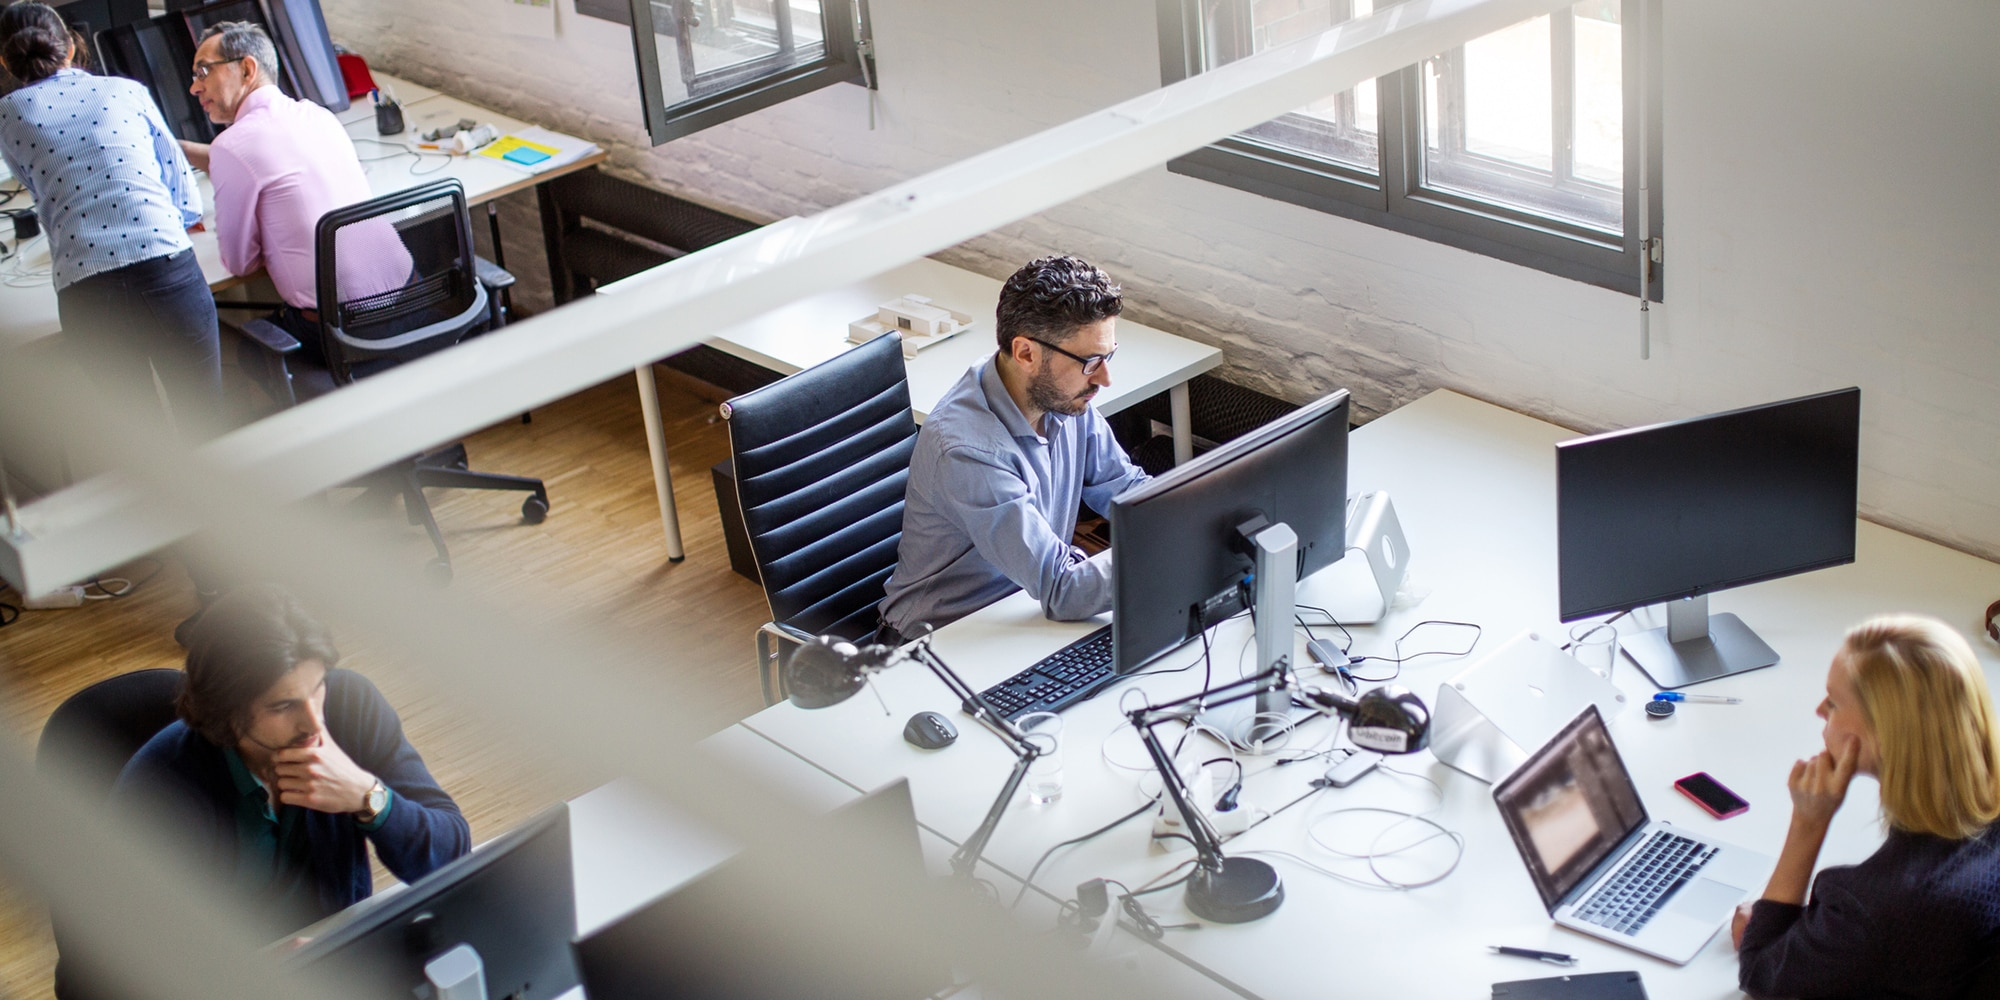 Open office workers in front of computers